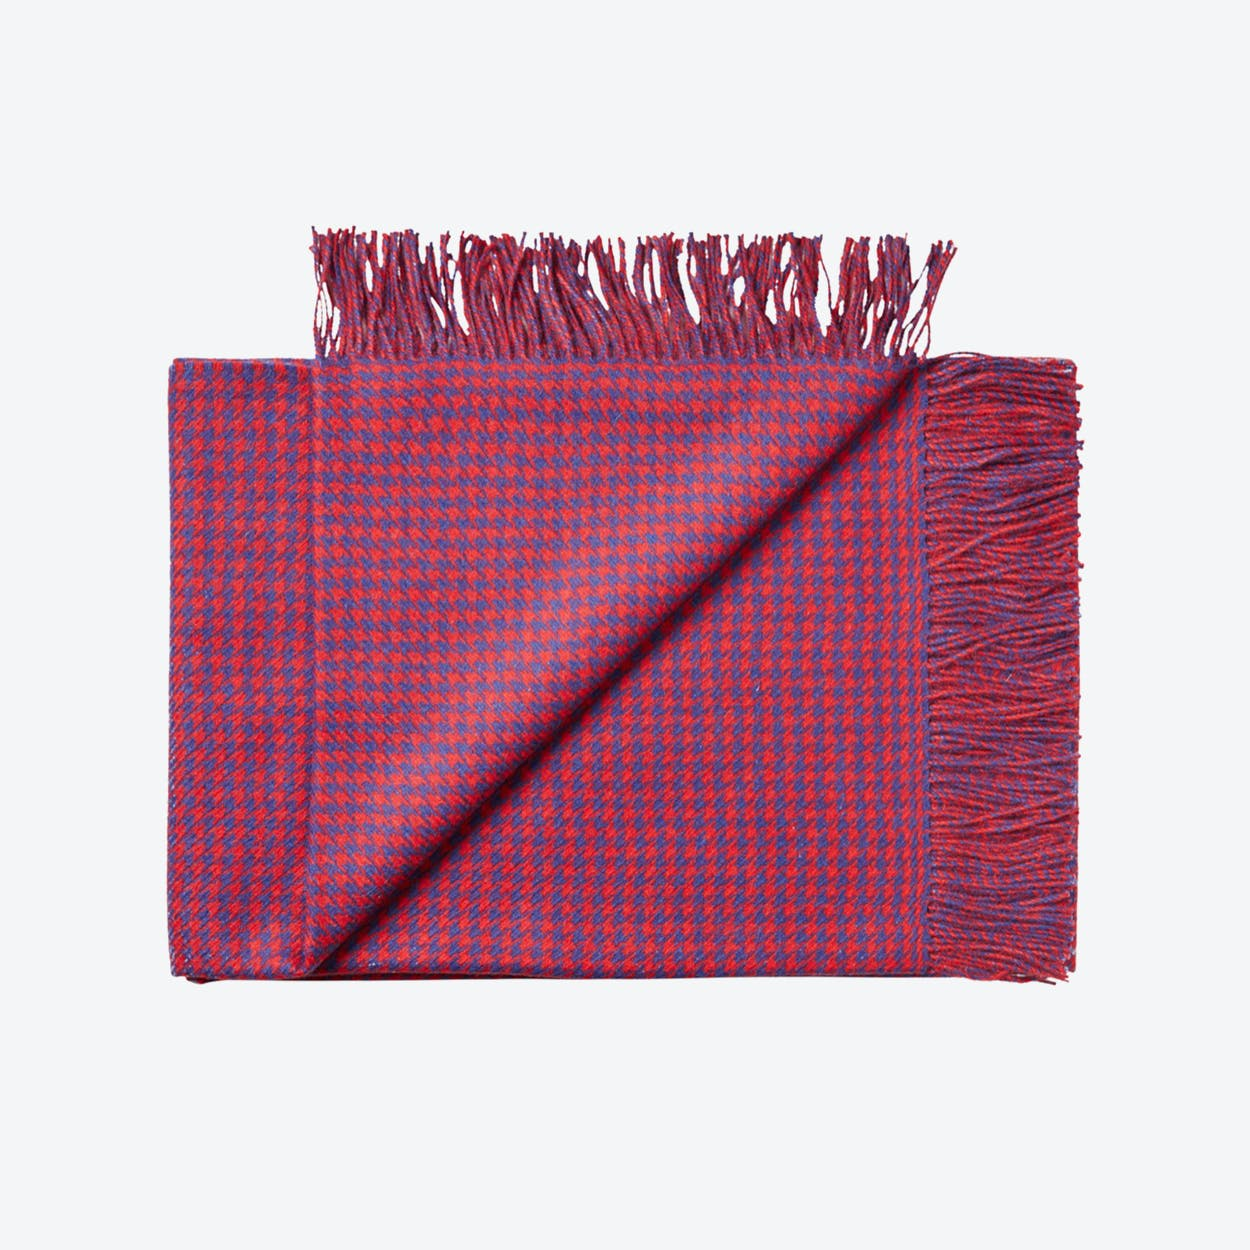 Nazca Baby Alpaca Throw in Red